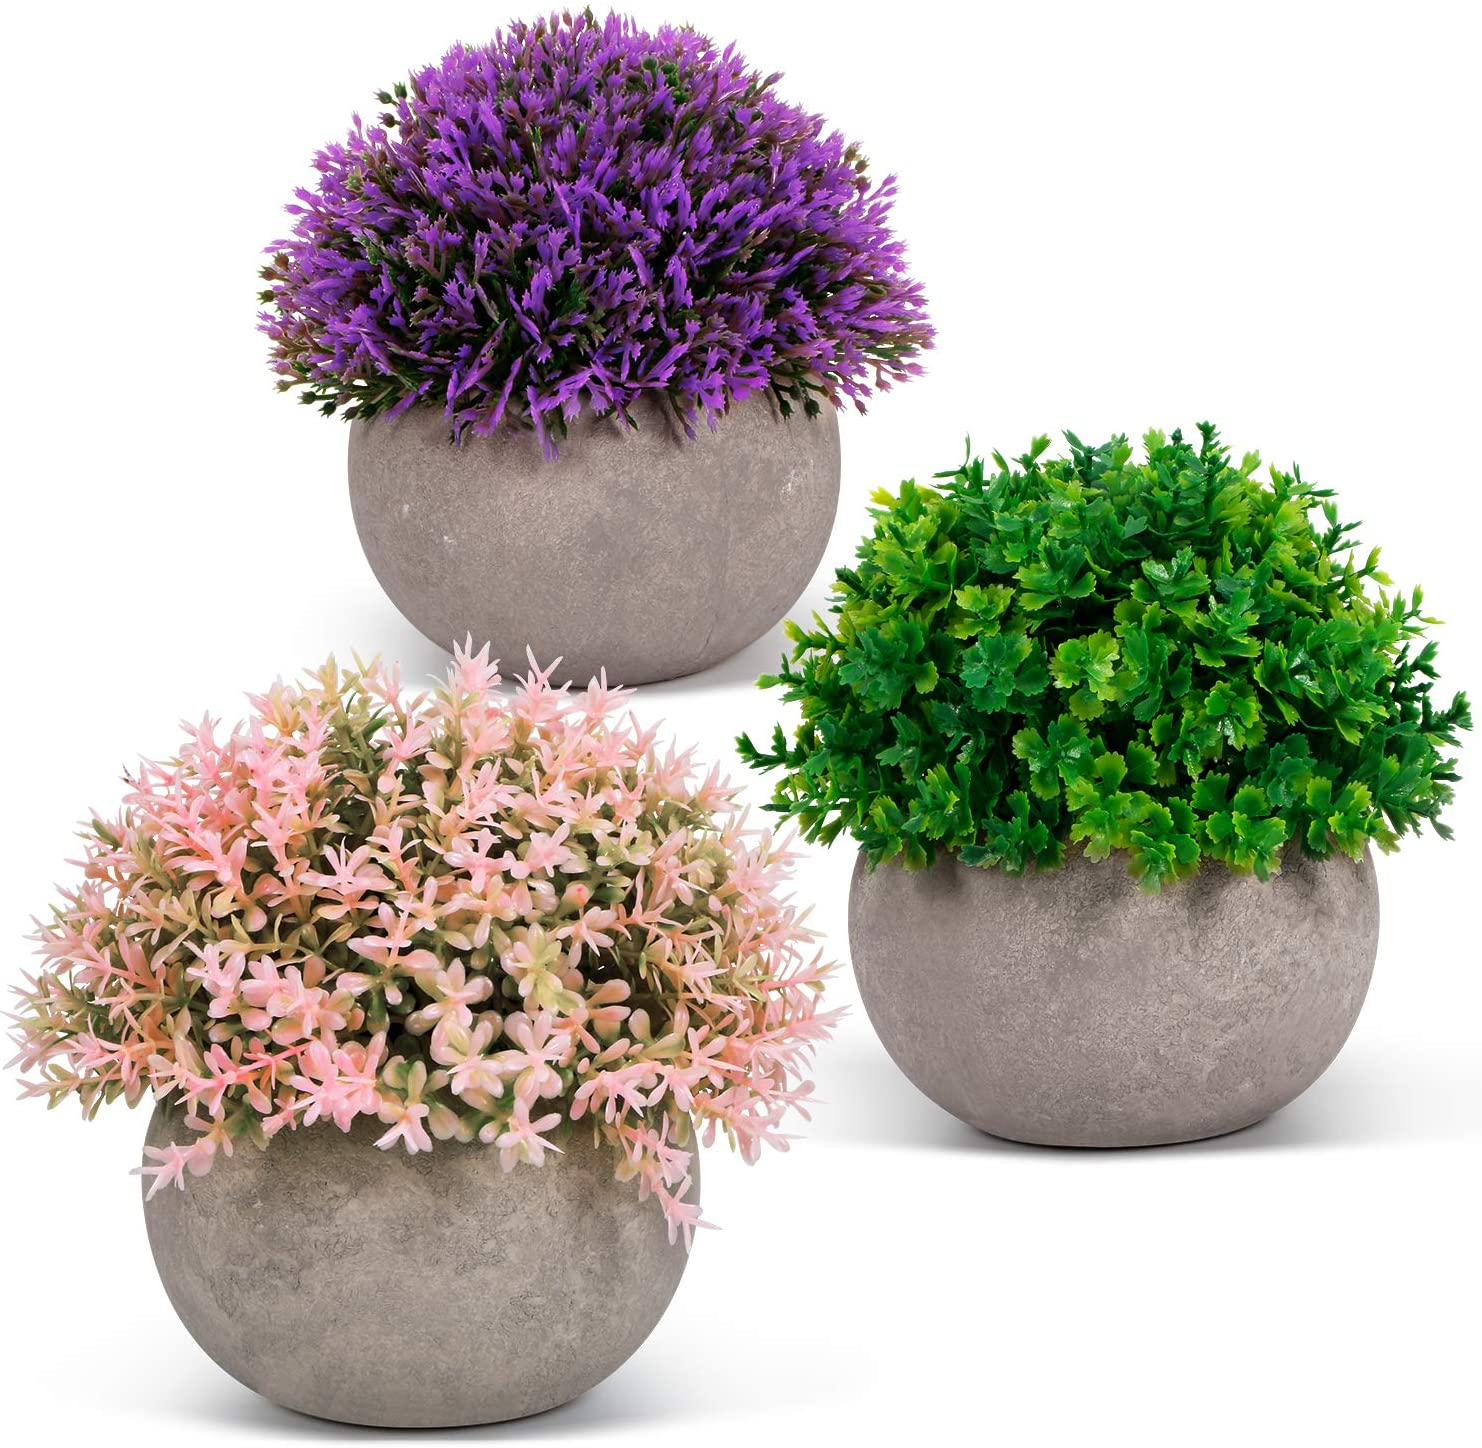 ODOM Artificial Plants - 3 Pcs Mini Fake Plants in Pots for Home Decor - Faux Colorful Flower for Bathroom Farmhouse Office Wedding Decorations